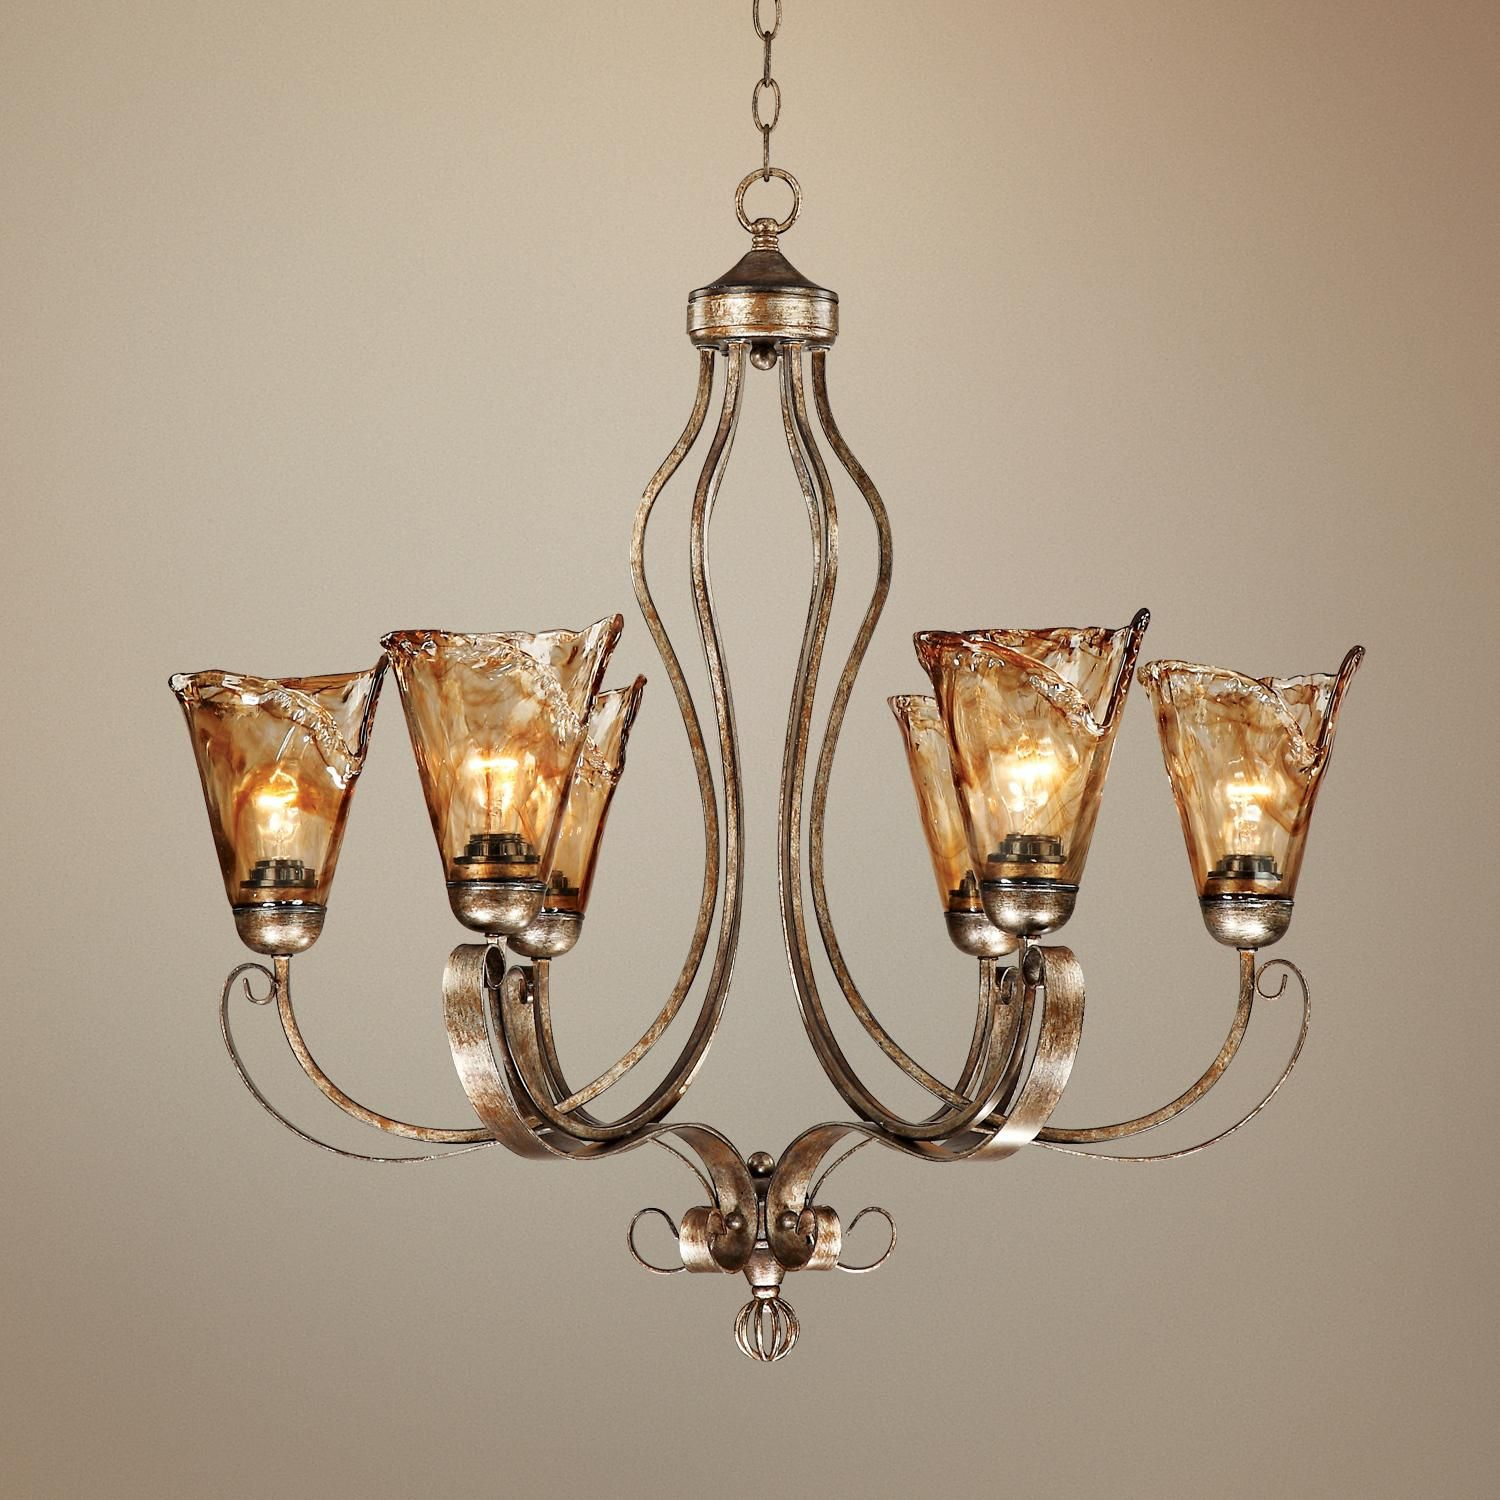 "Franklin Iron Works Amber Scroll 31 1 2"" Wide Chandelier Style"